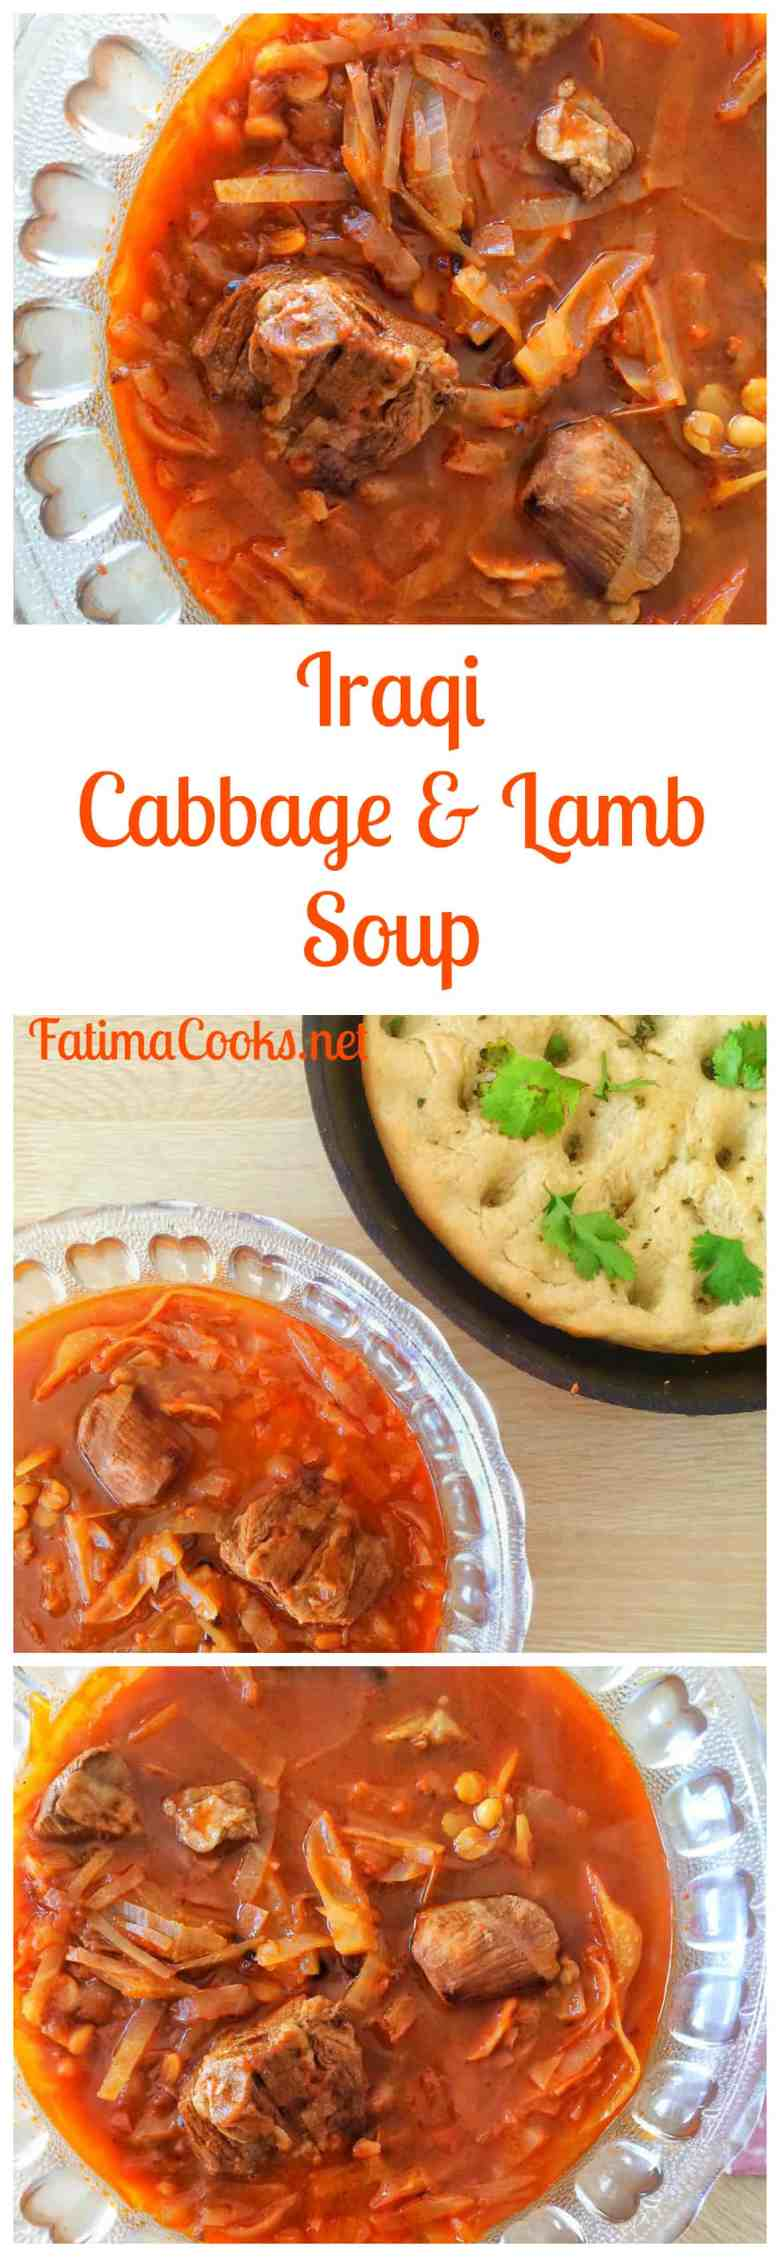 Iraqi Cabbage & Lamb Stoup - try this simple and healthy recipe served with warm, homemade bread! Recipe @ fatimacooks.net